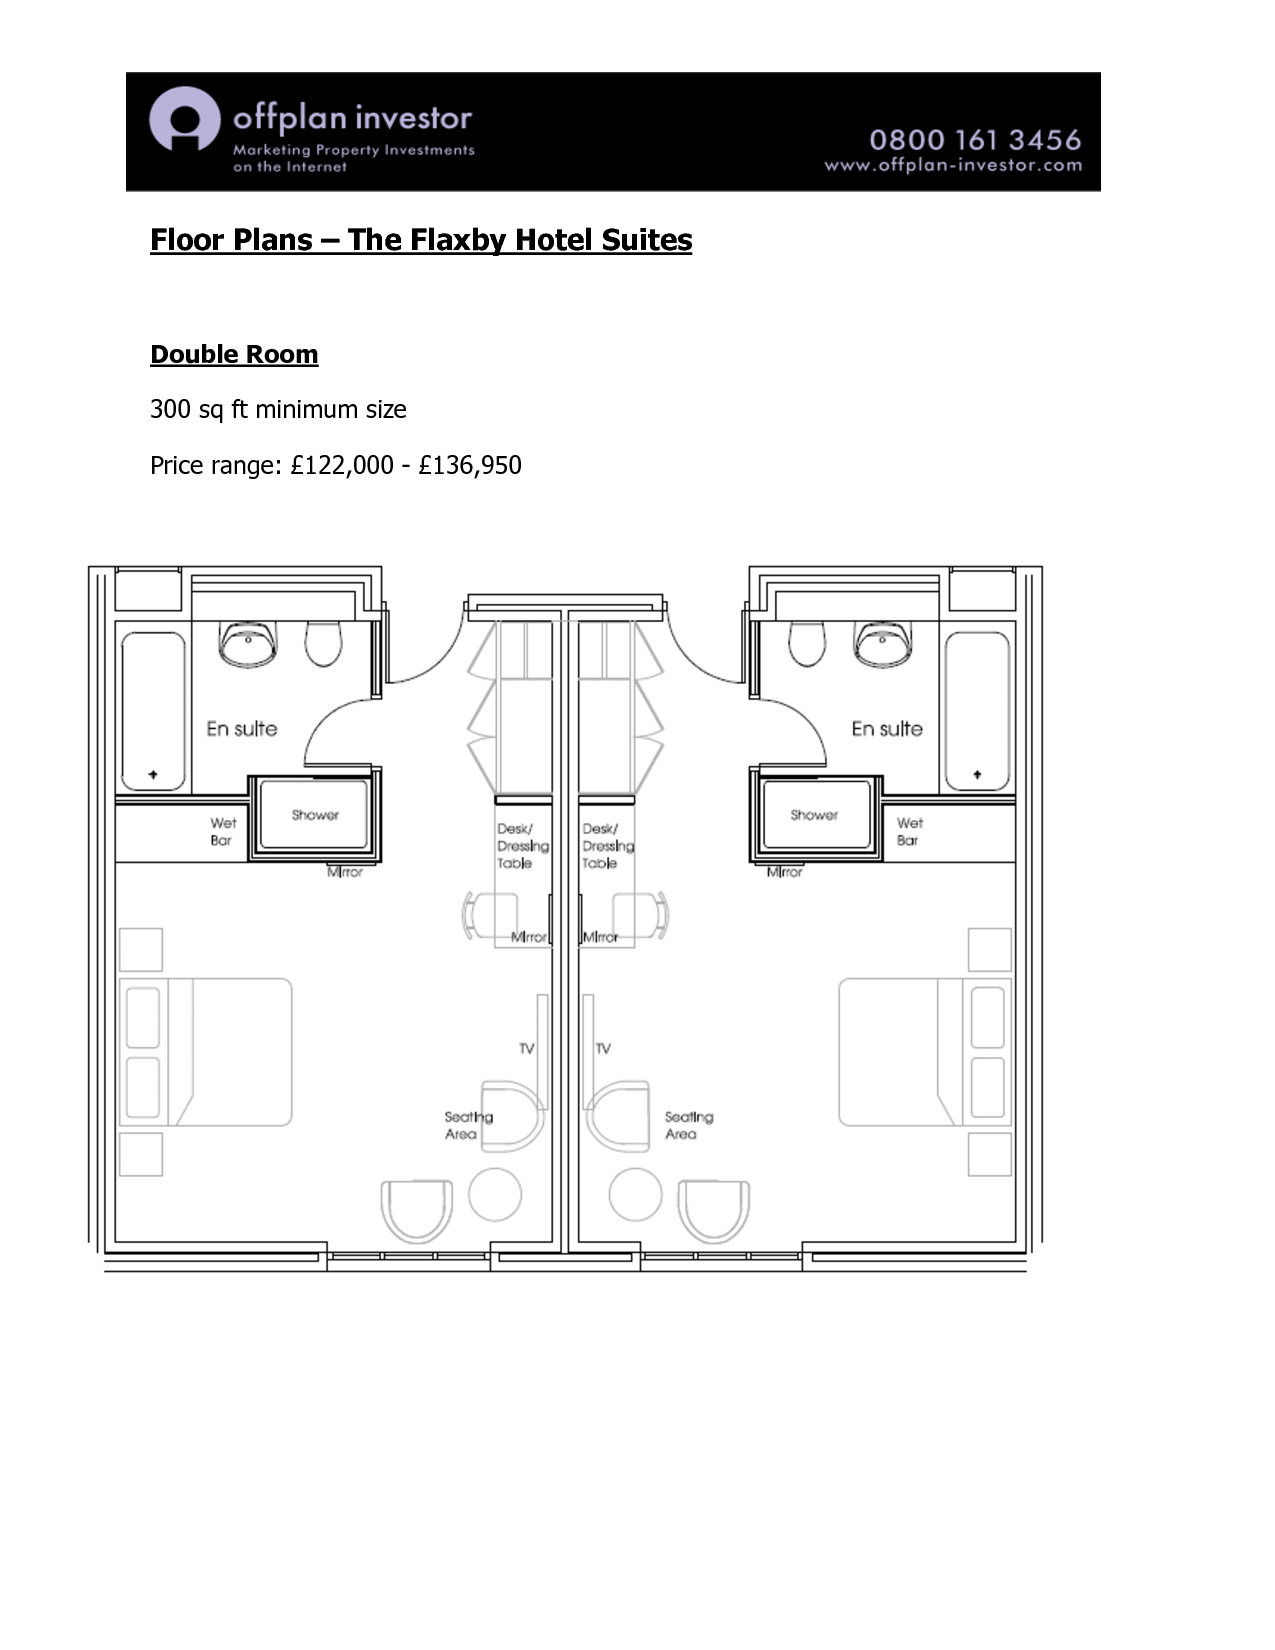 Plan Chambre Hotel Hotel Room Floor Plans Floor Plans The Flaxby Hotel Suites